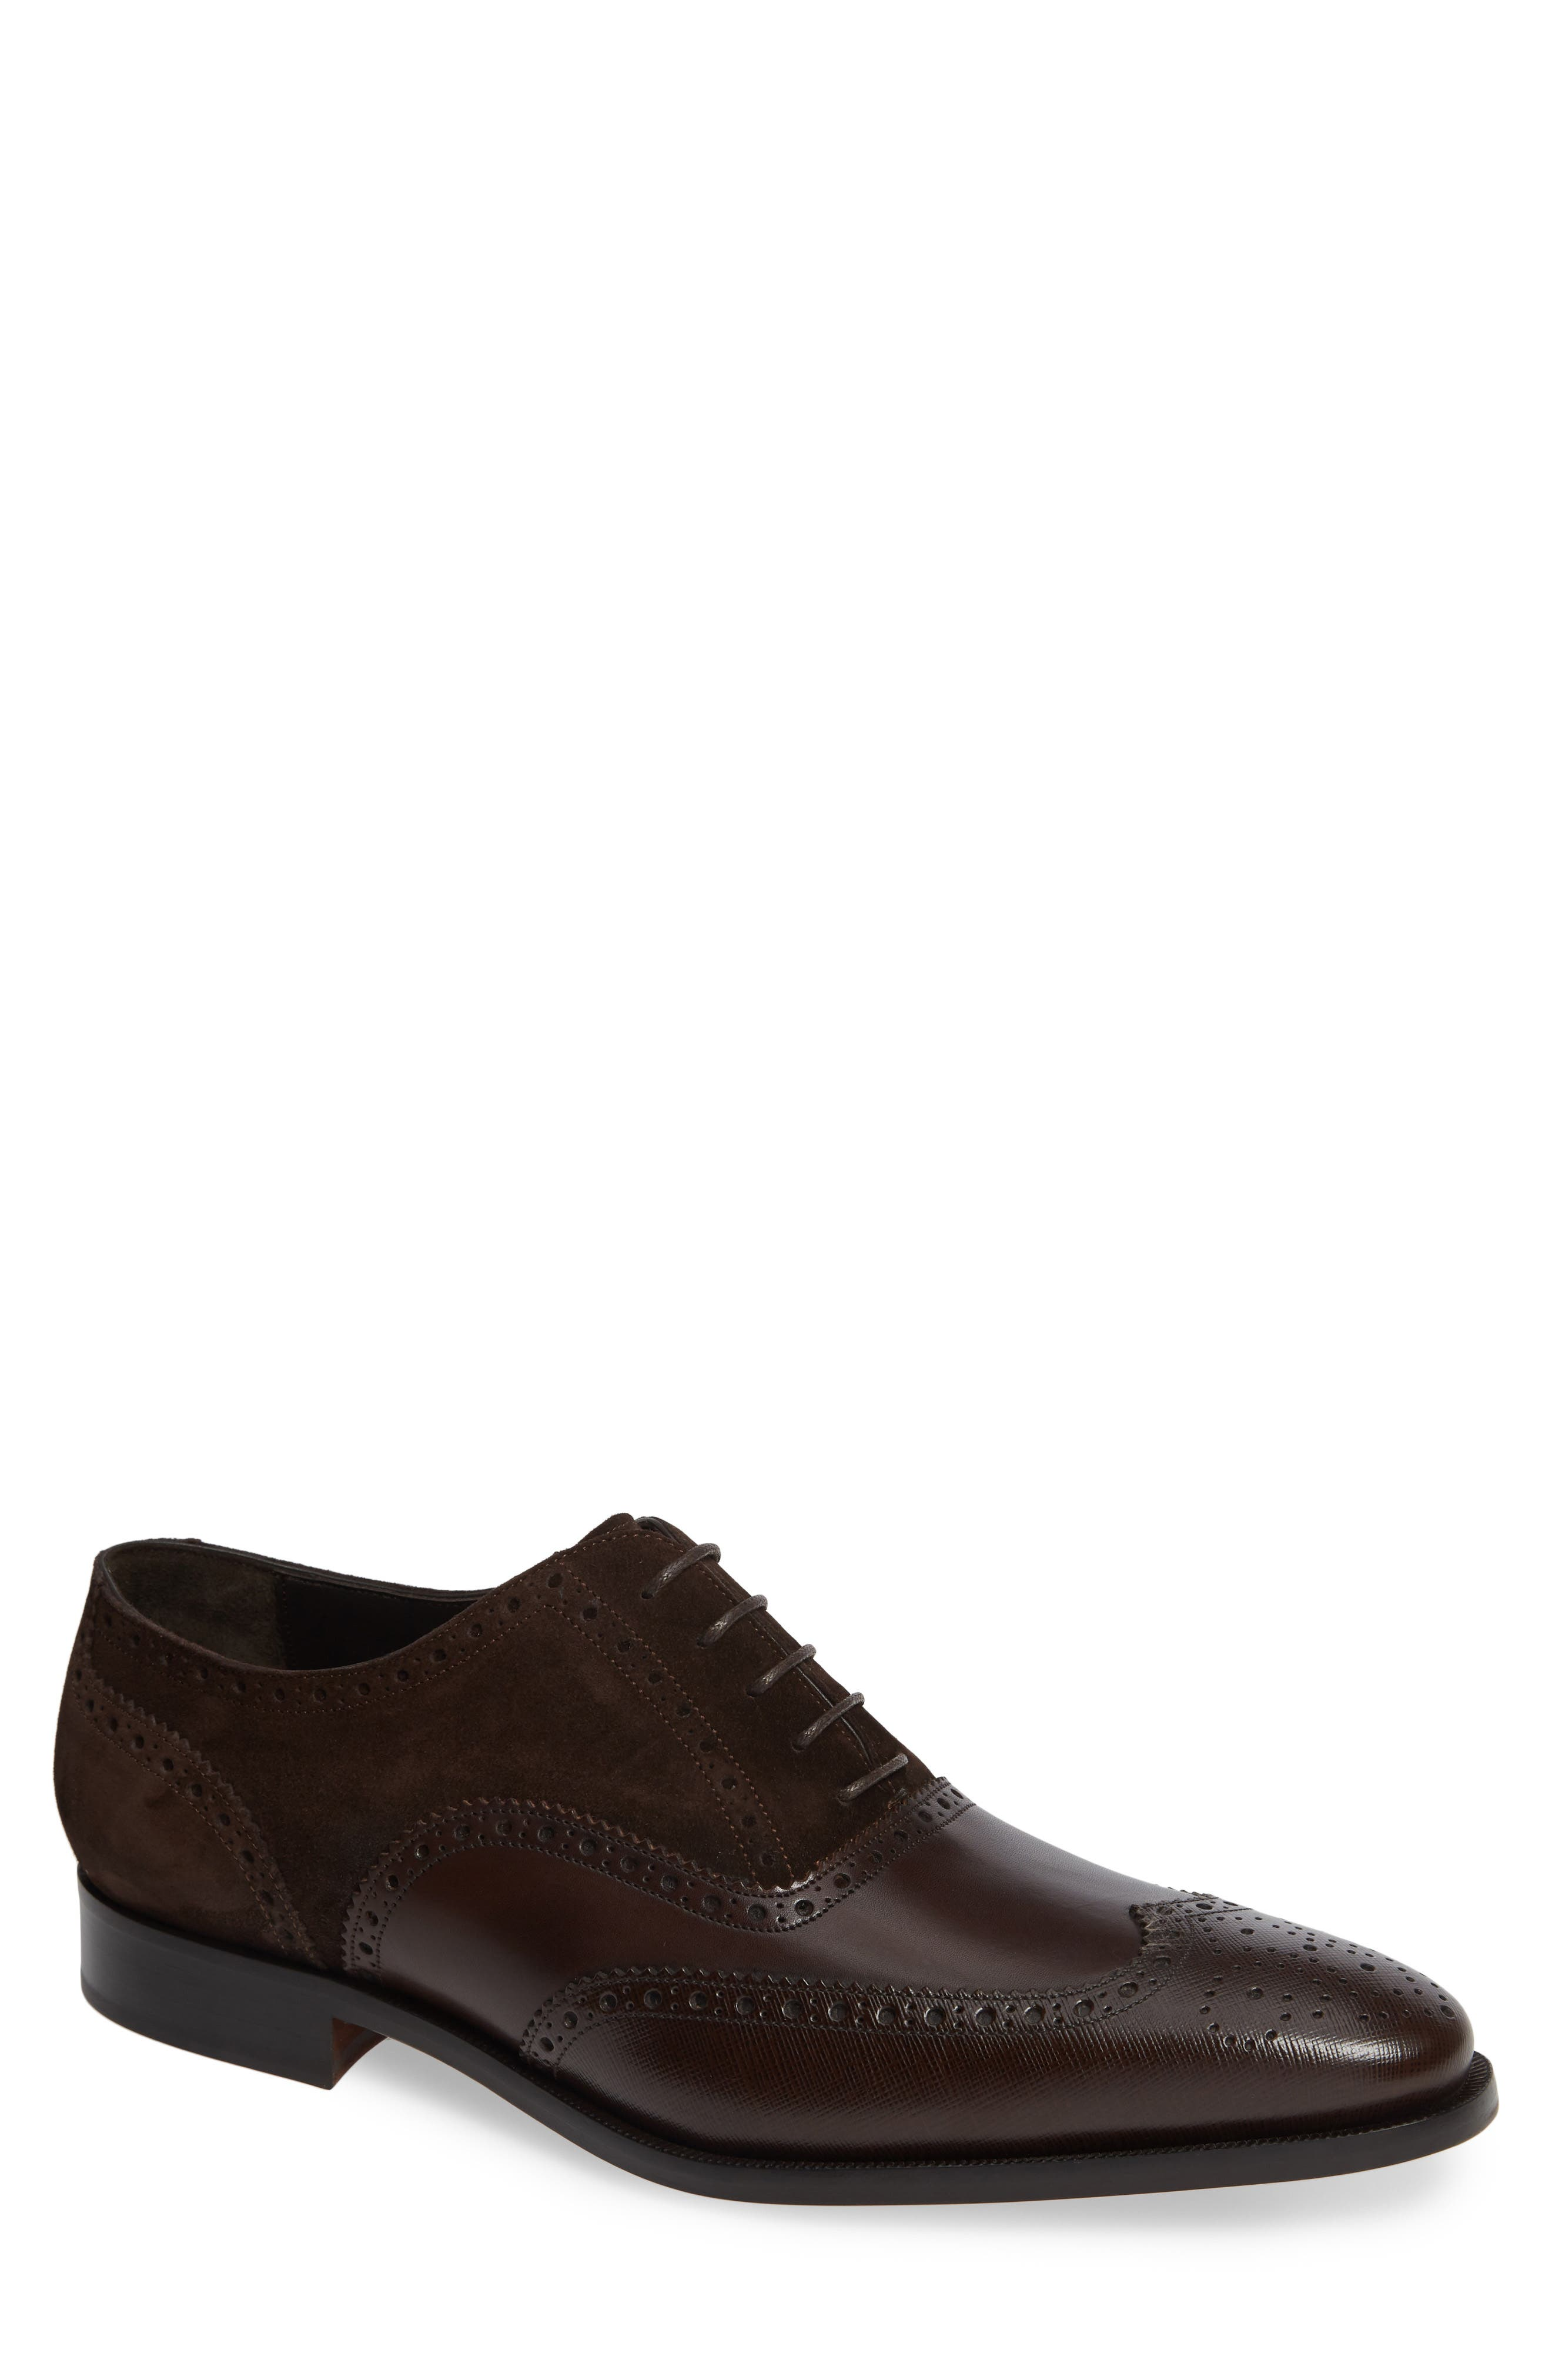 Cologne Wingtip,                             Main thumbnail 1, color,                             BROWN SUEDE/ LEATHER